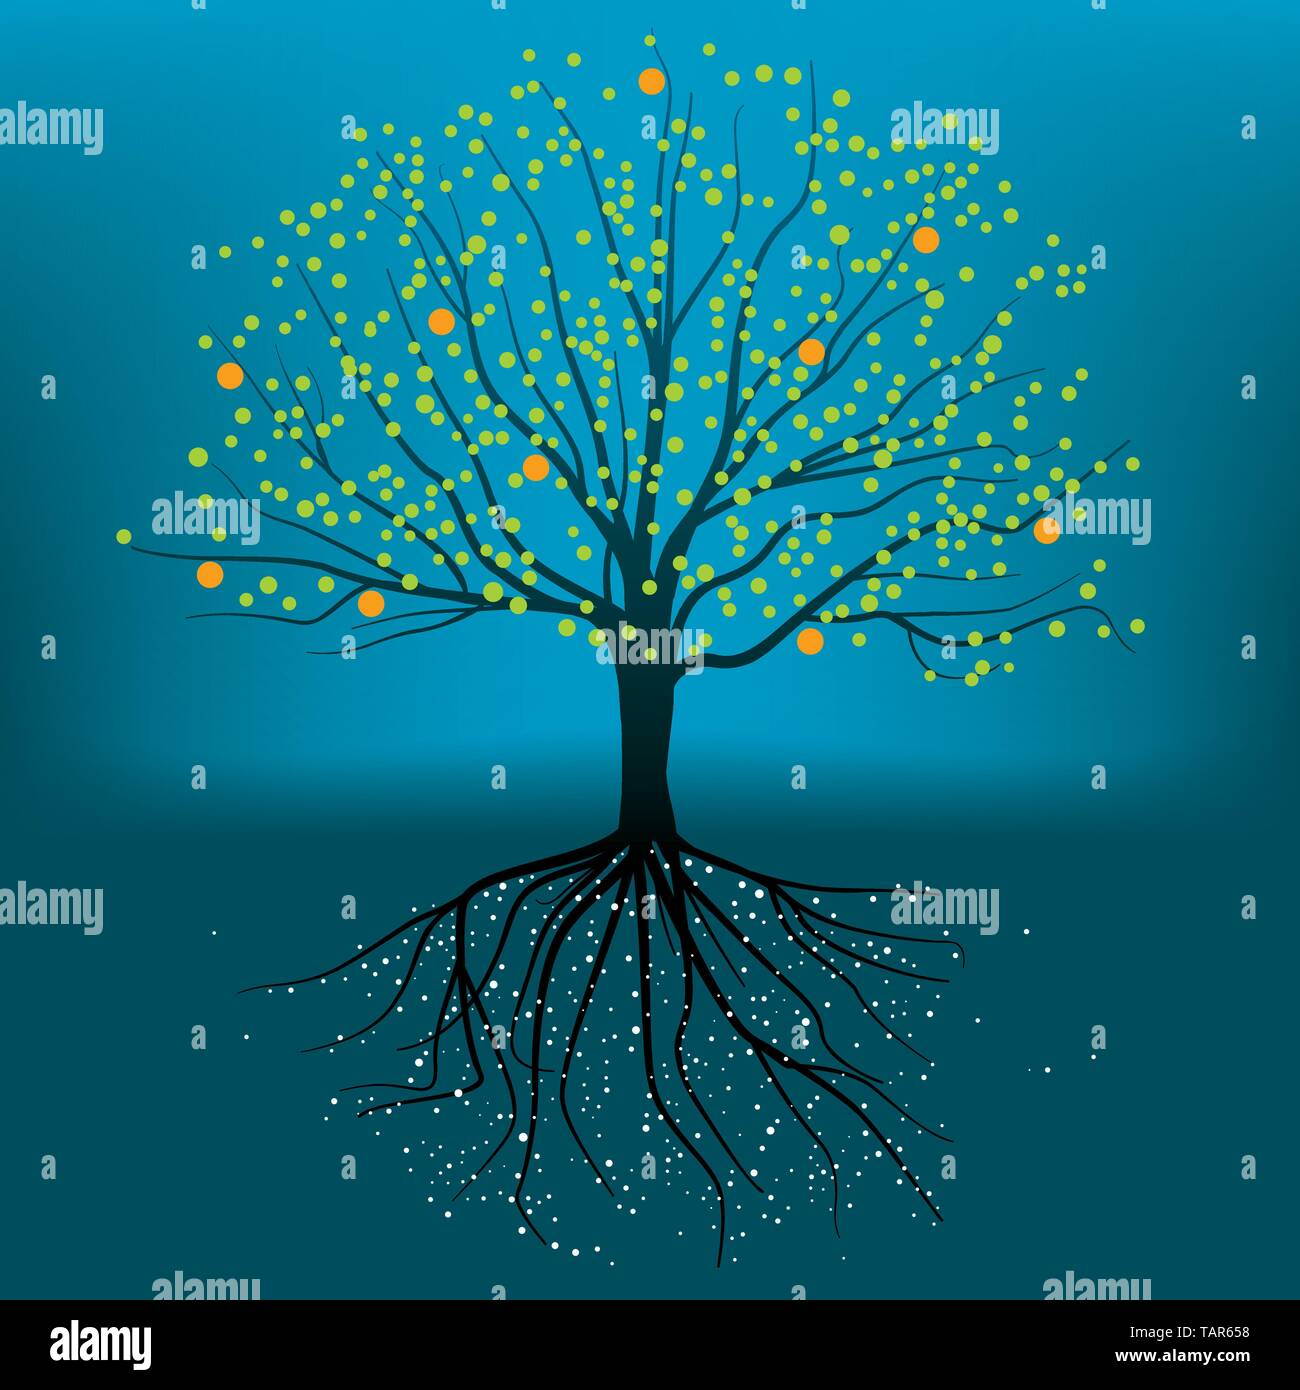 Complete vector illustration of tree with roots, branchs and leafs. - Stock Image